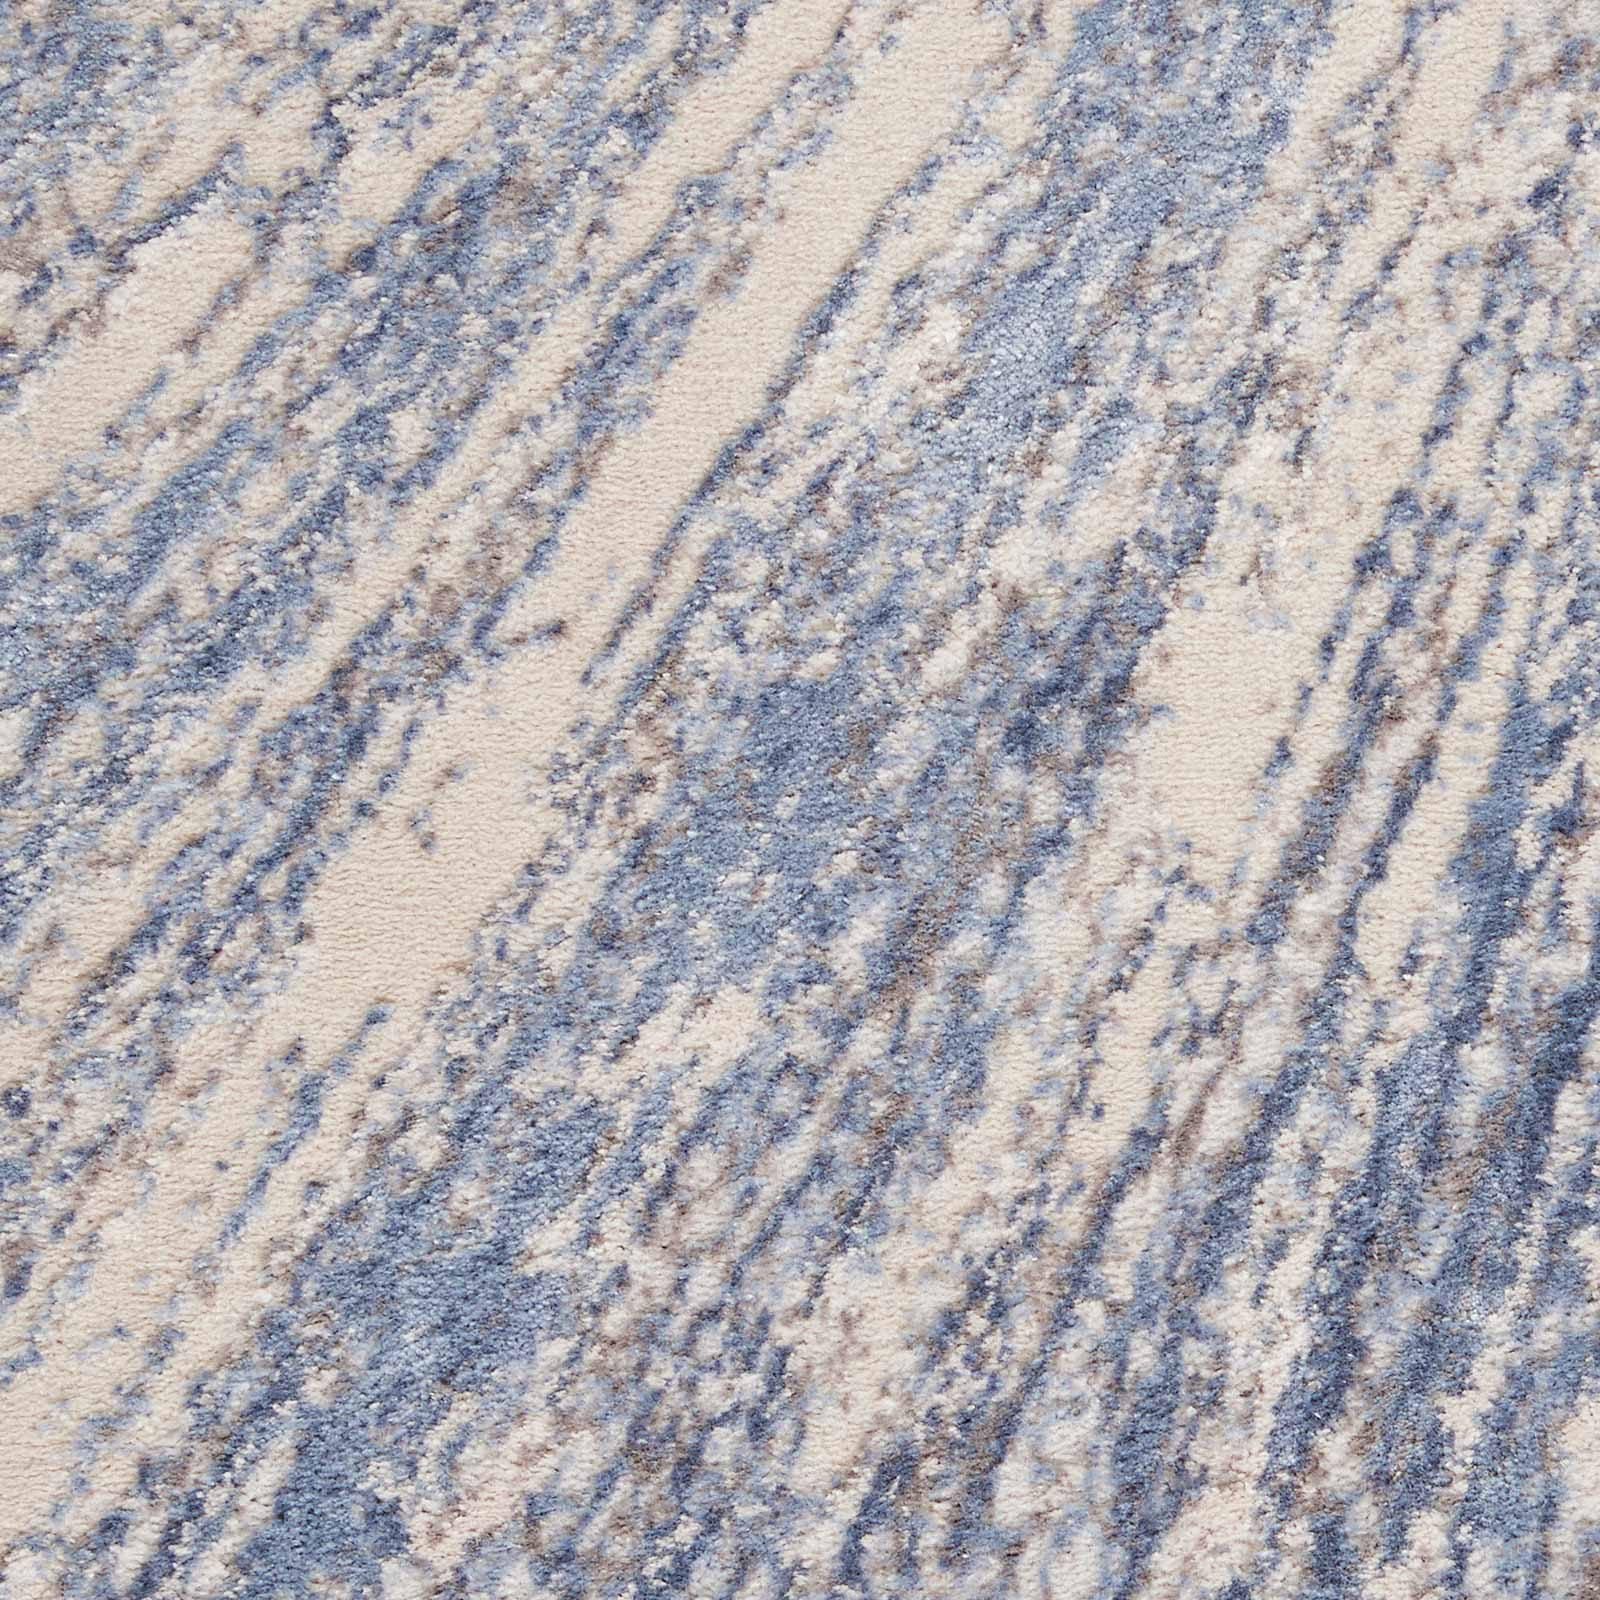 Nourison rug Silky Textures SLY05 BLUE GREY 5x7 099446710222 swatch C